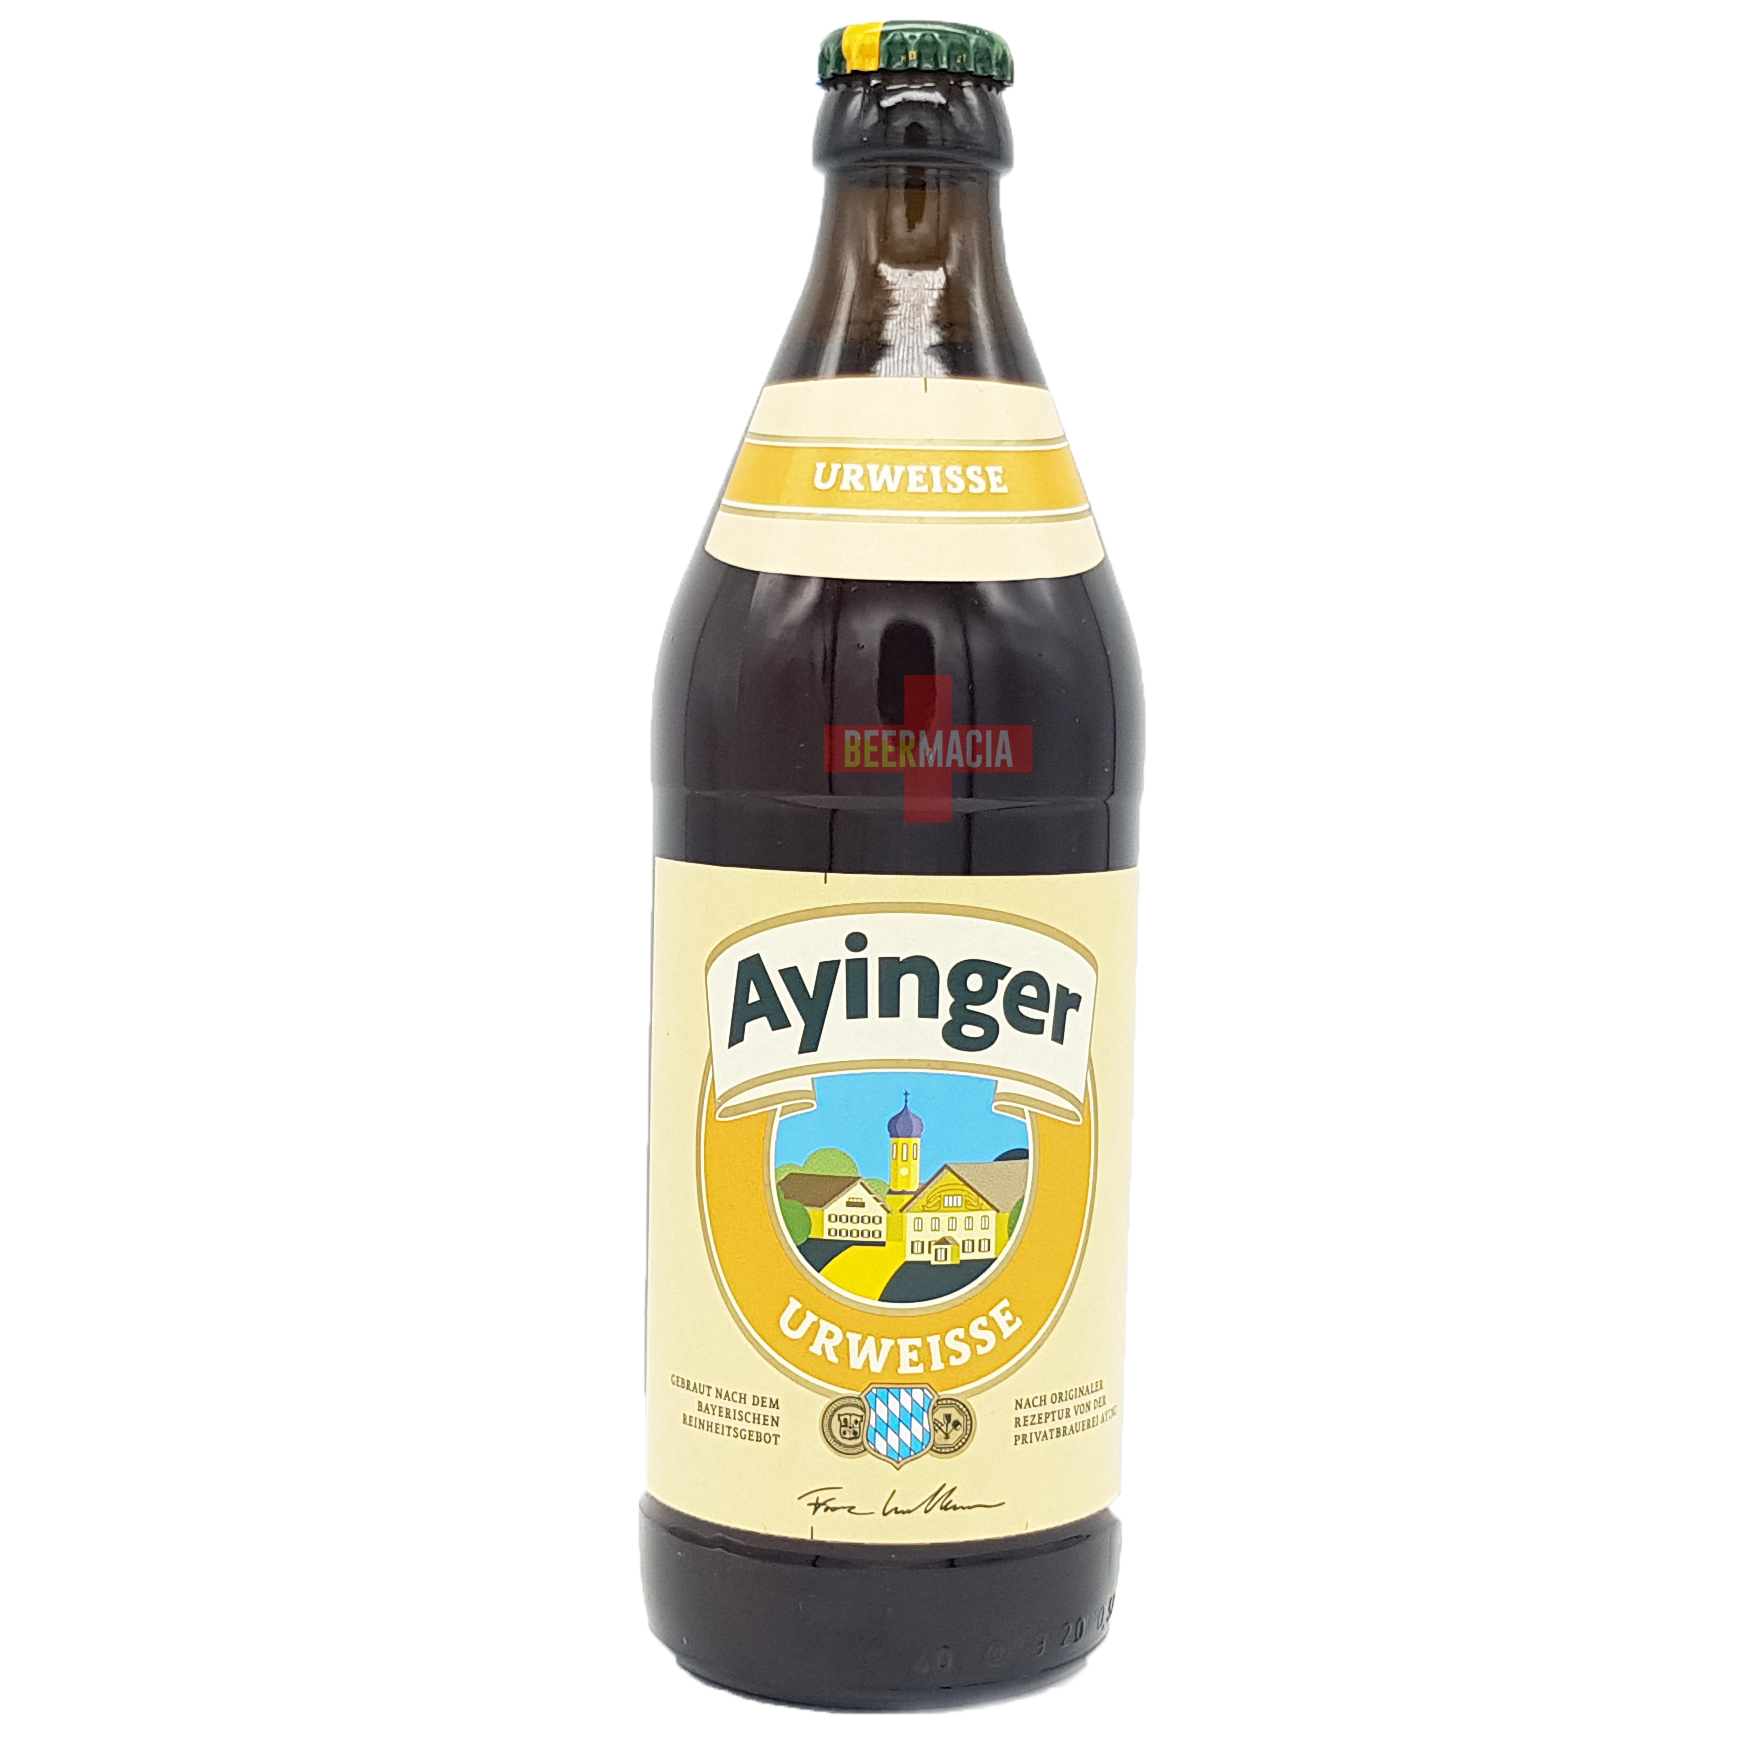 Ayinger - Urweisse 50cl